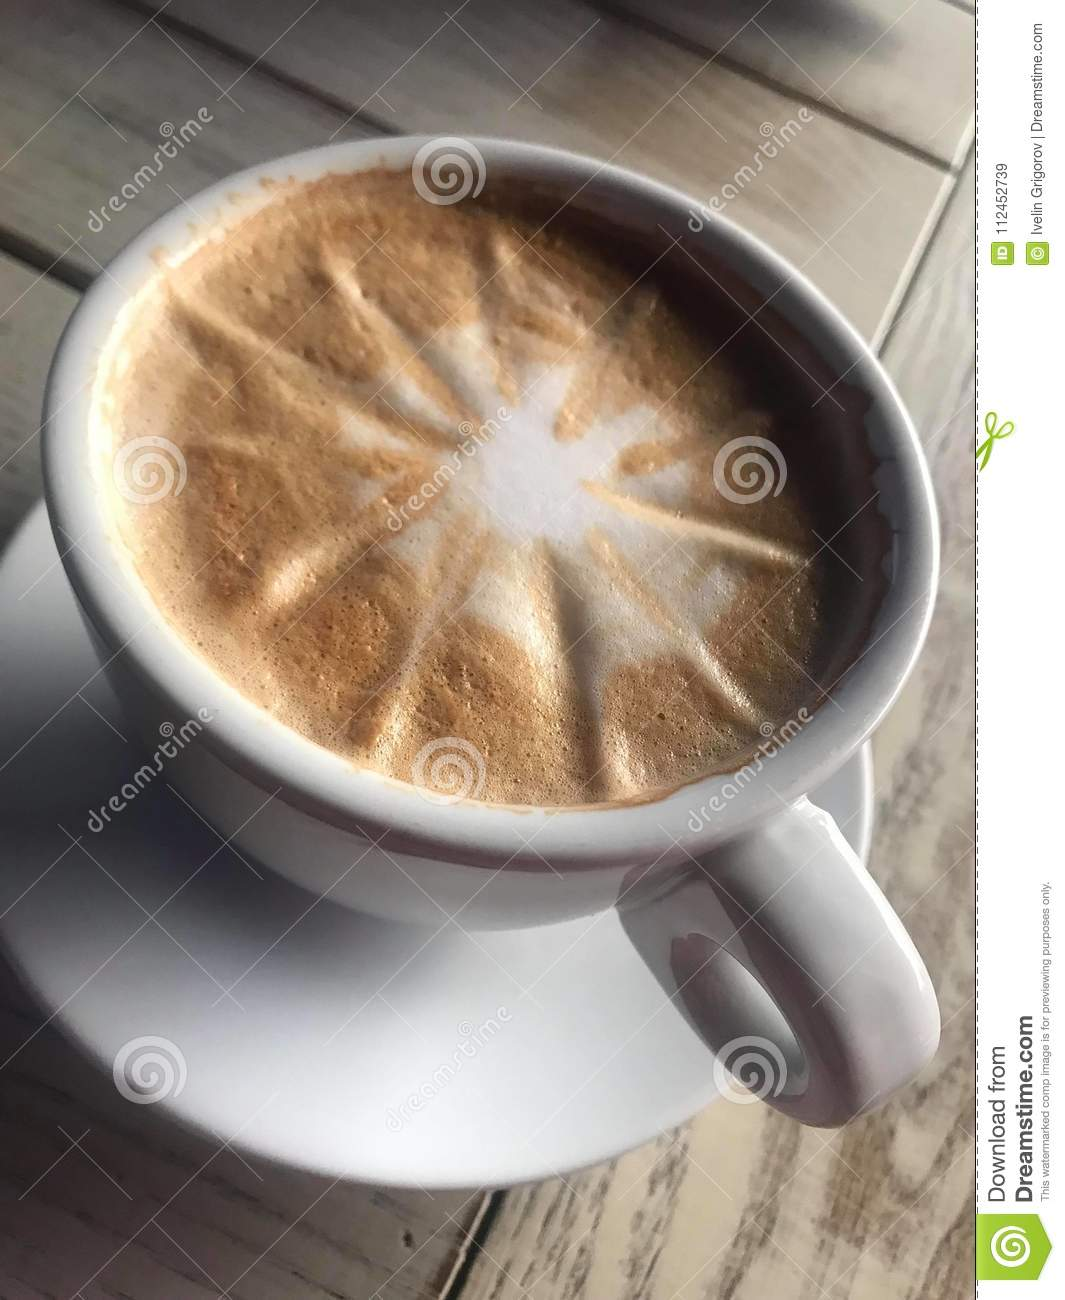 A delicious cappuccino in a Porzellan cup. Placed on a wooden table